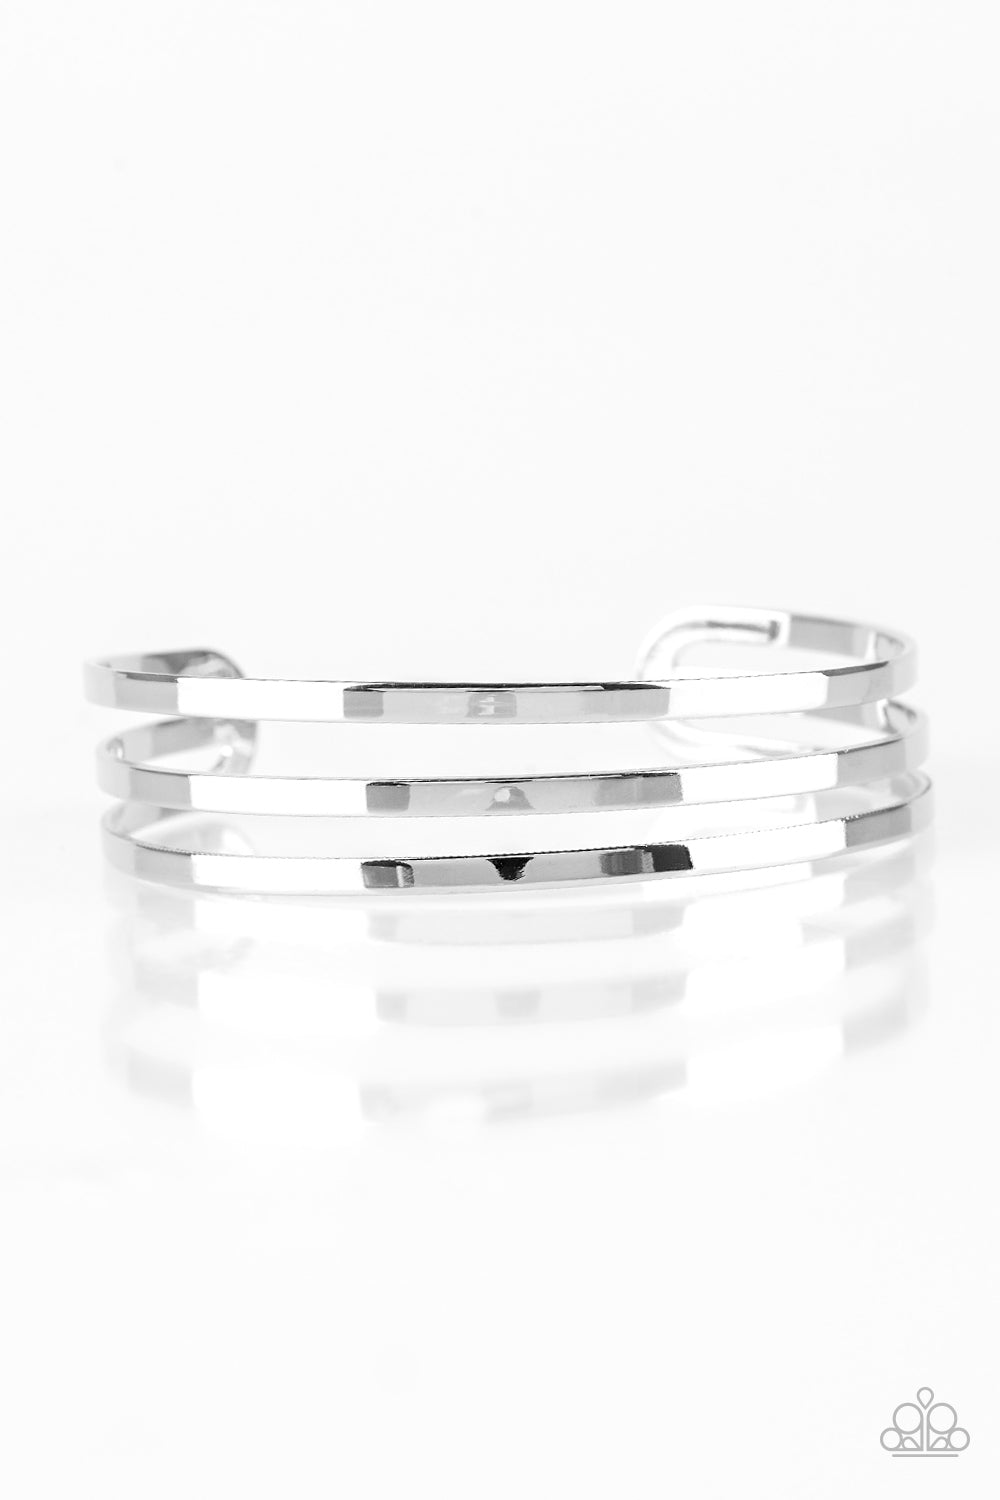 Street Sleek - Silver Cuff Bracelet - The Paparazzi Fox